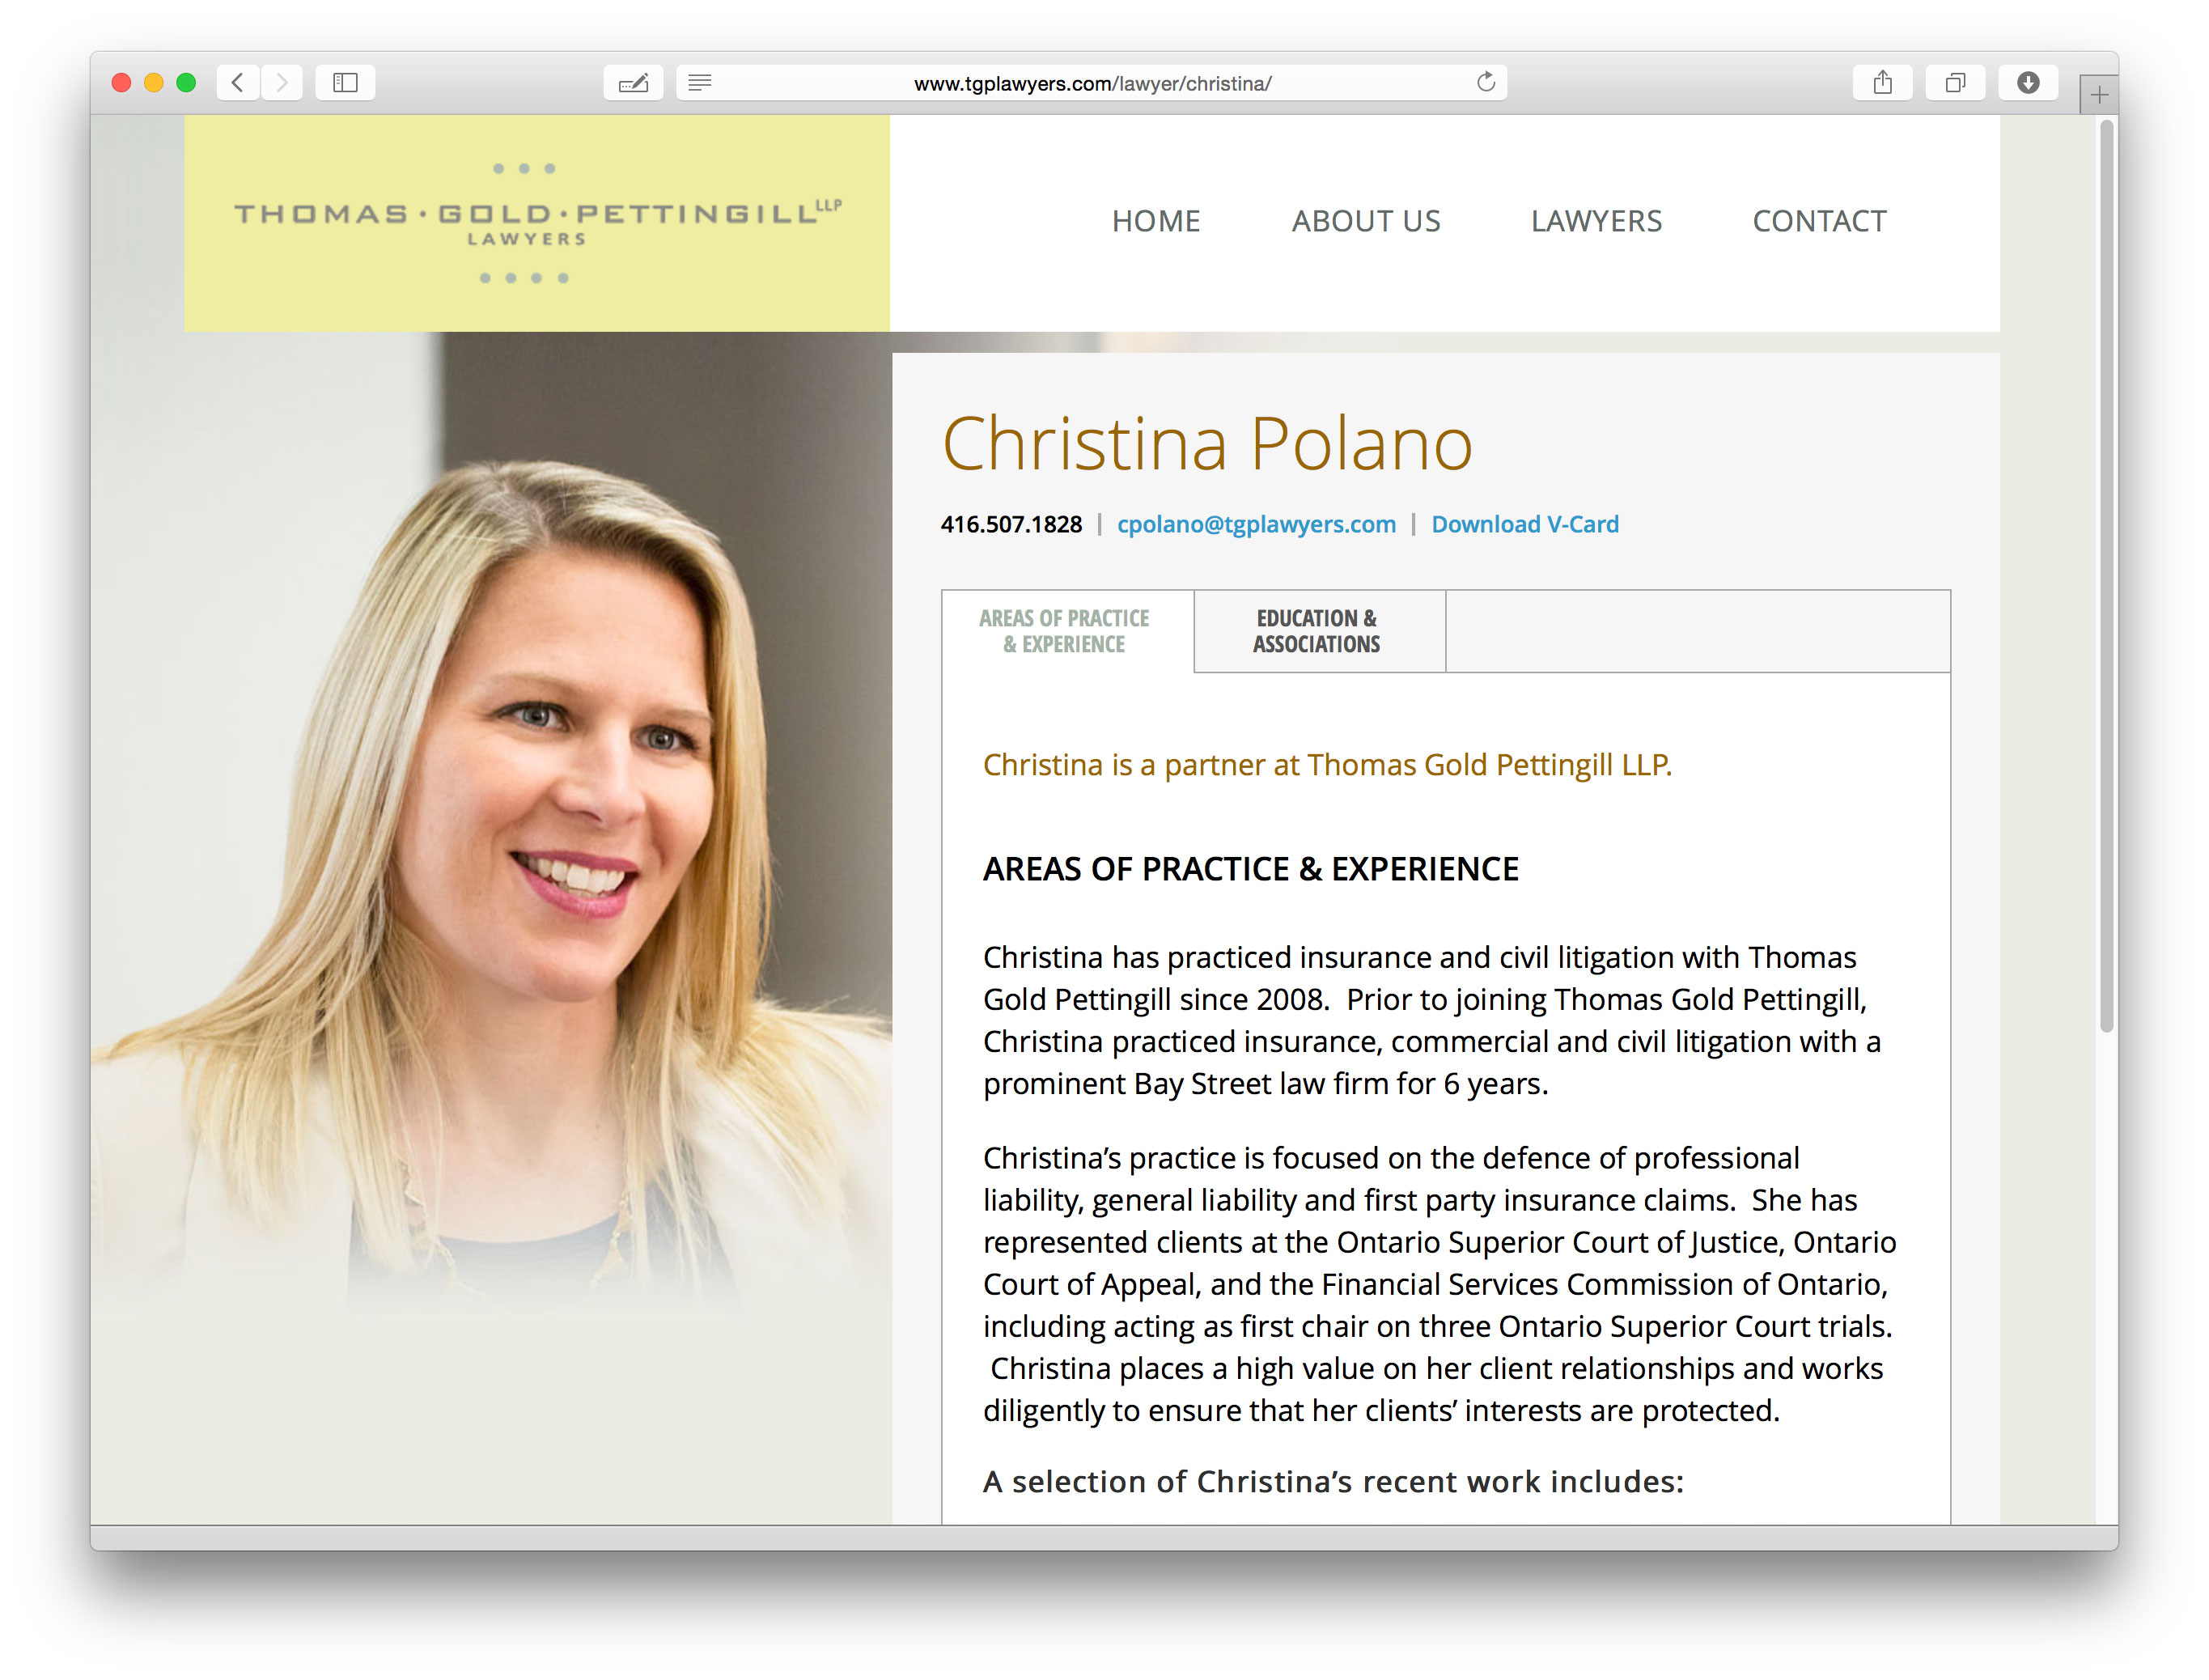 Biography page sample for TGP's website design